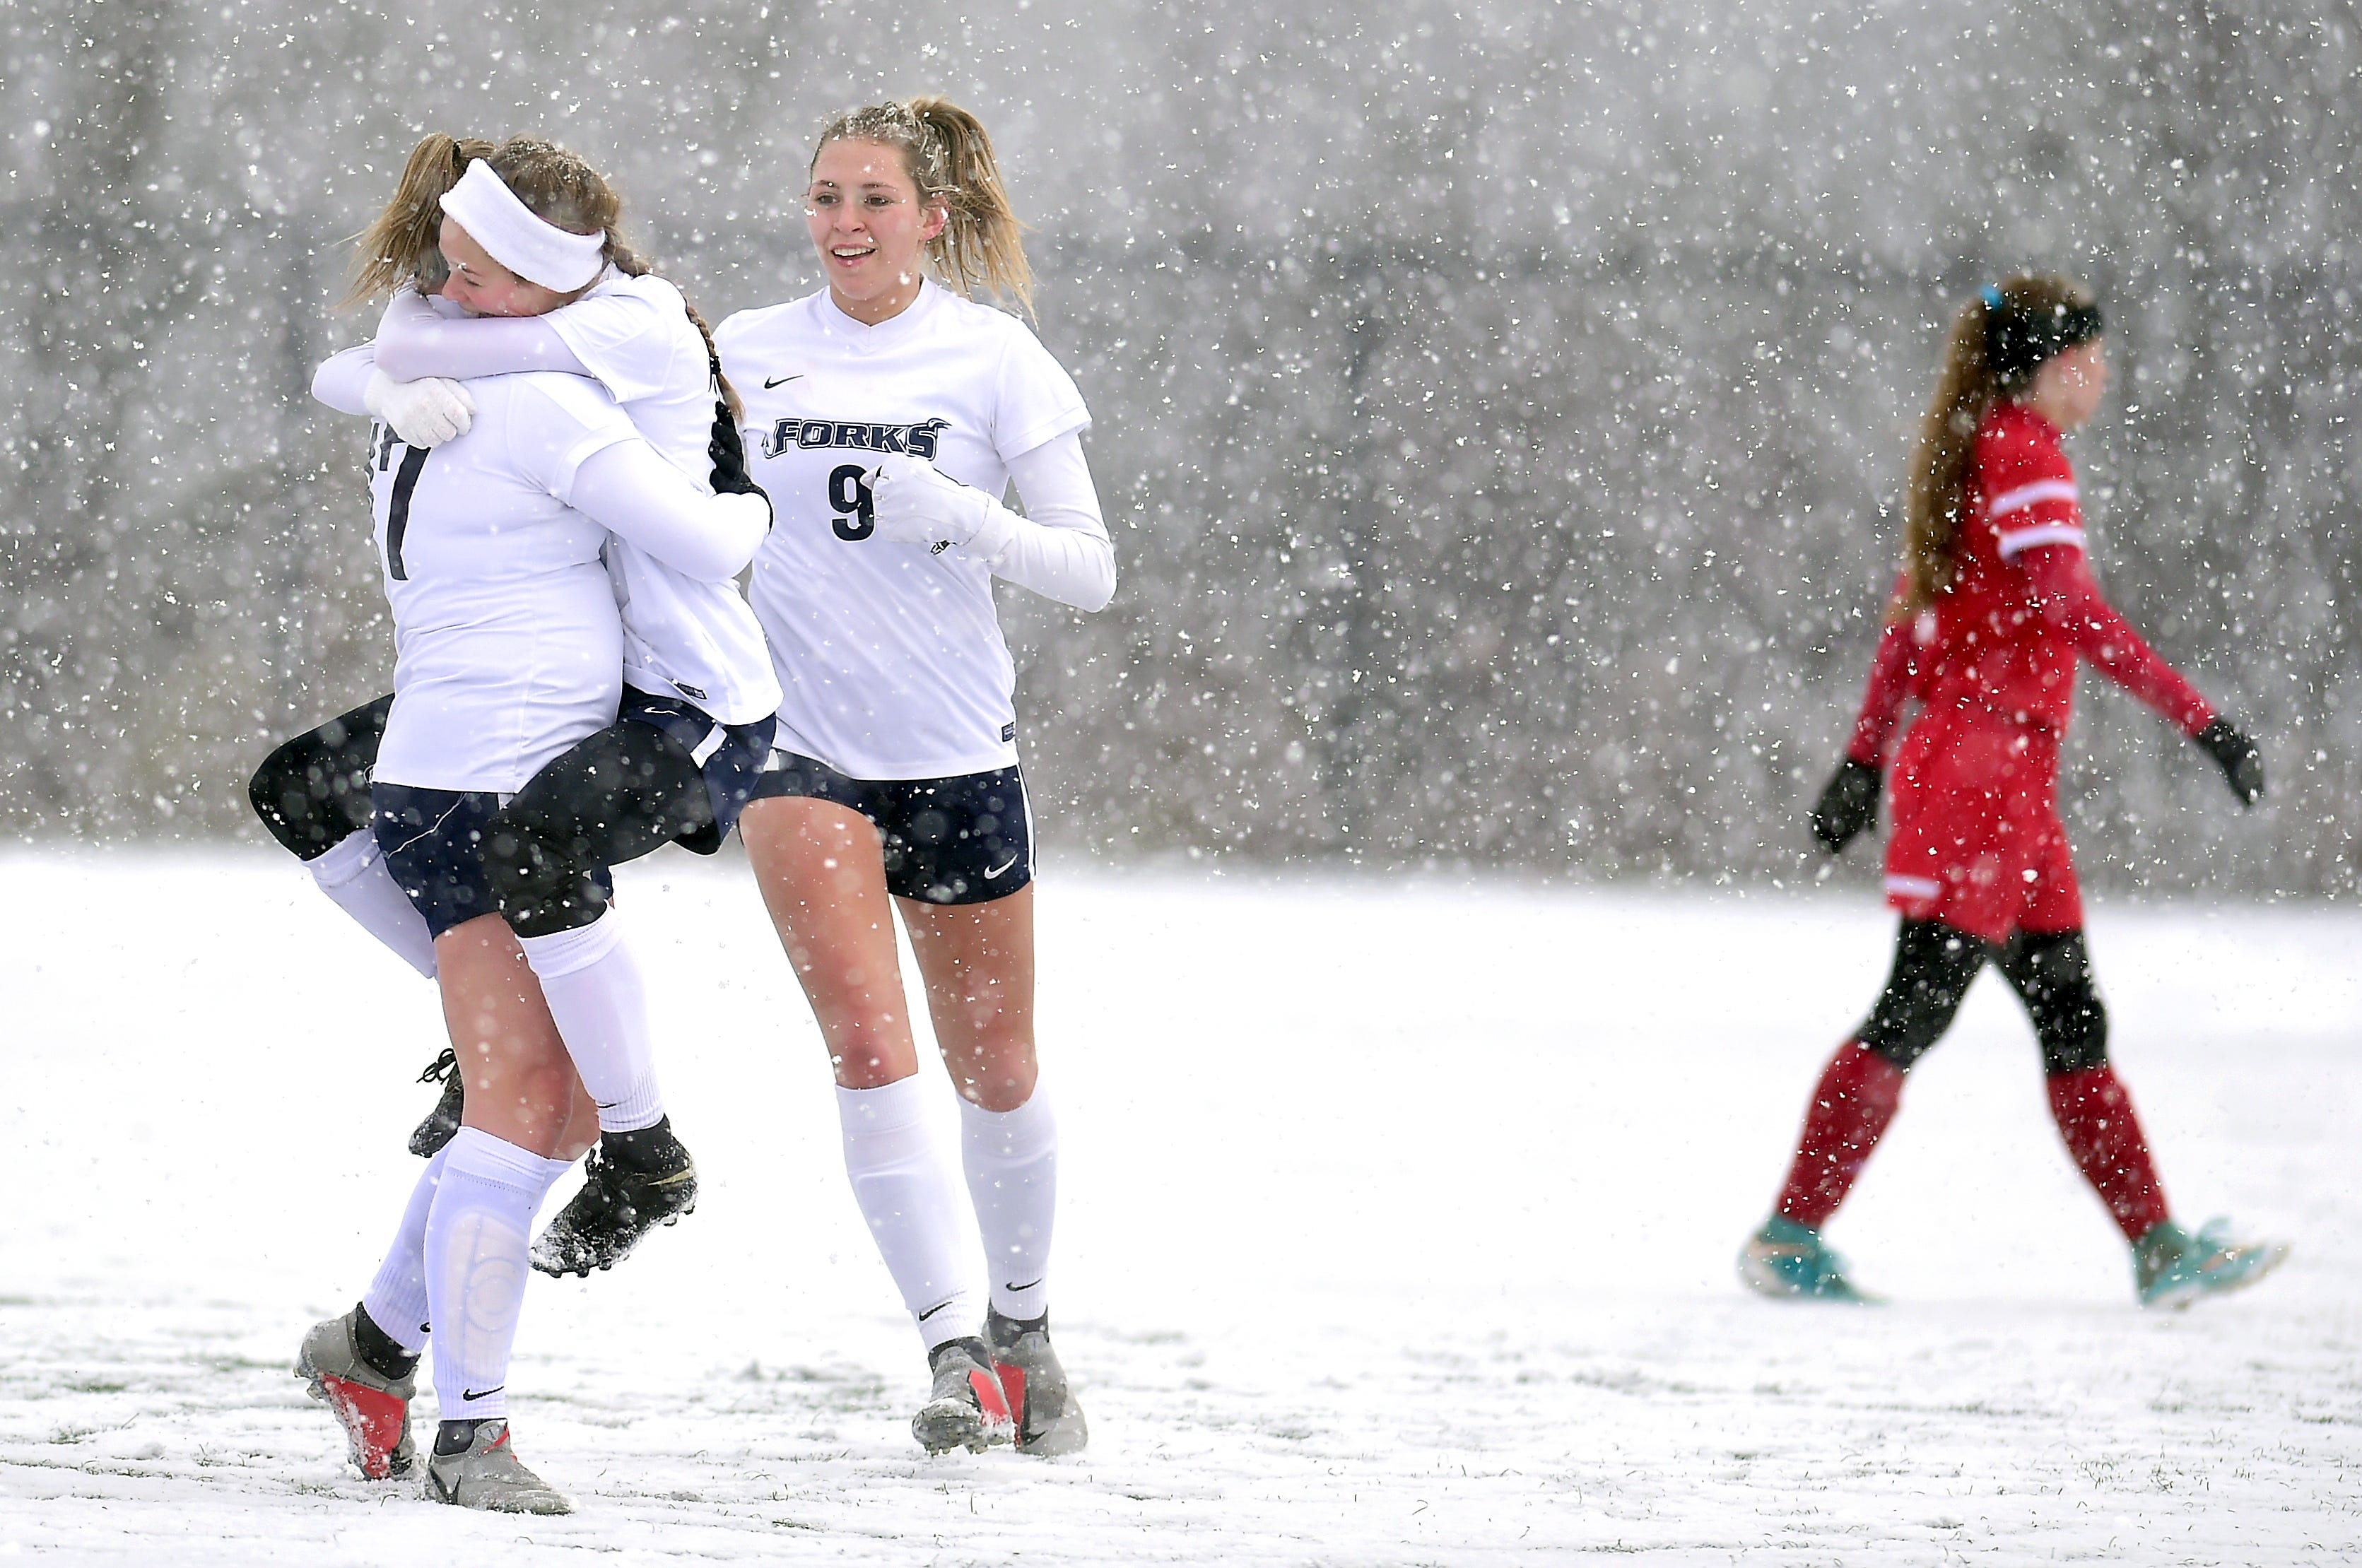 Chenango Forks teammates Aubrey Bough, left, Cassidy Walsh, middle, and Lauren Ashman celebrate a goal during the first half of Chenango Forks' 3-0 victory over Wheatley in the Class B semifinals at Cortland High School on Saturday.